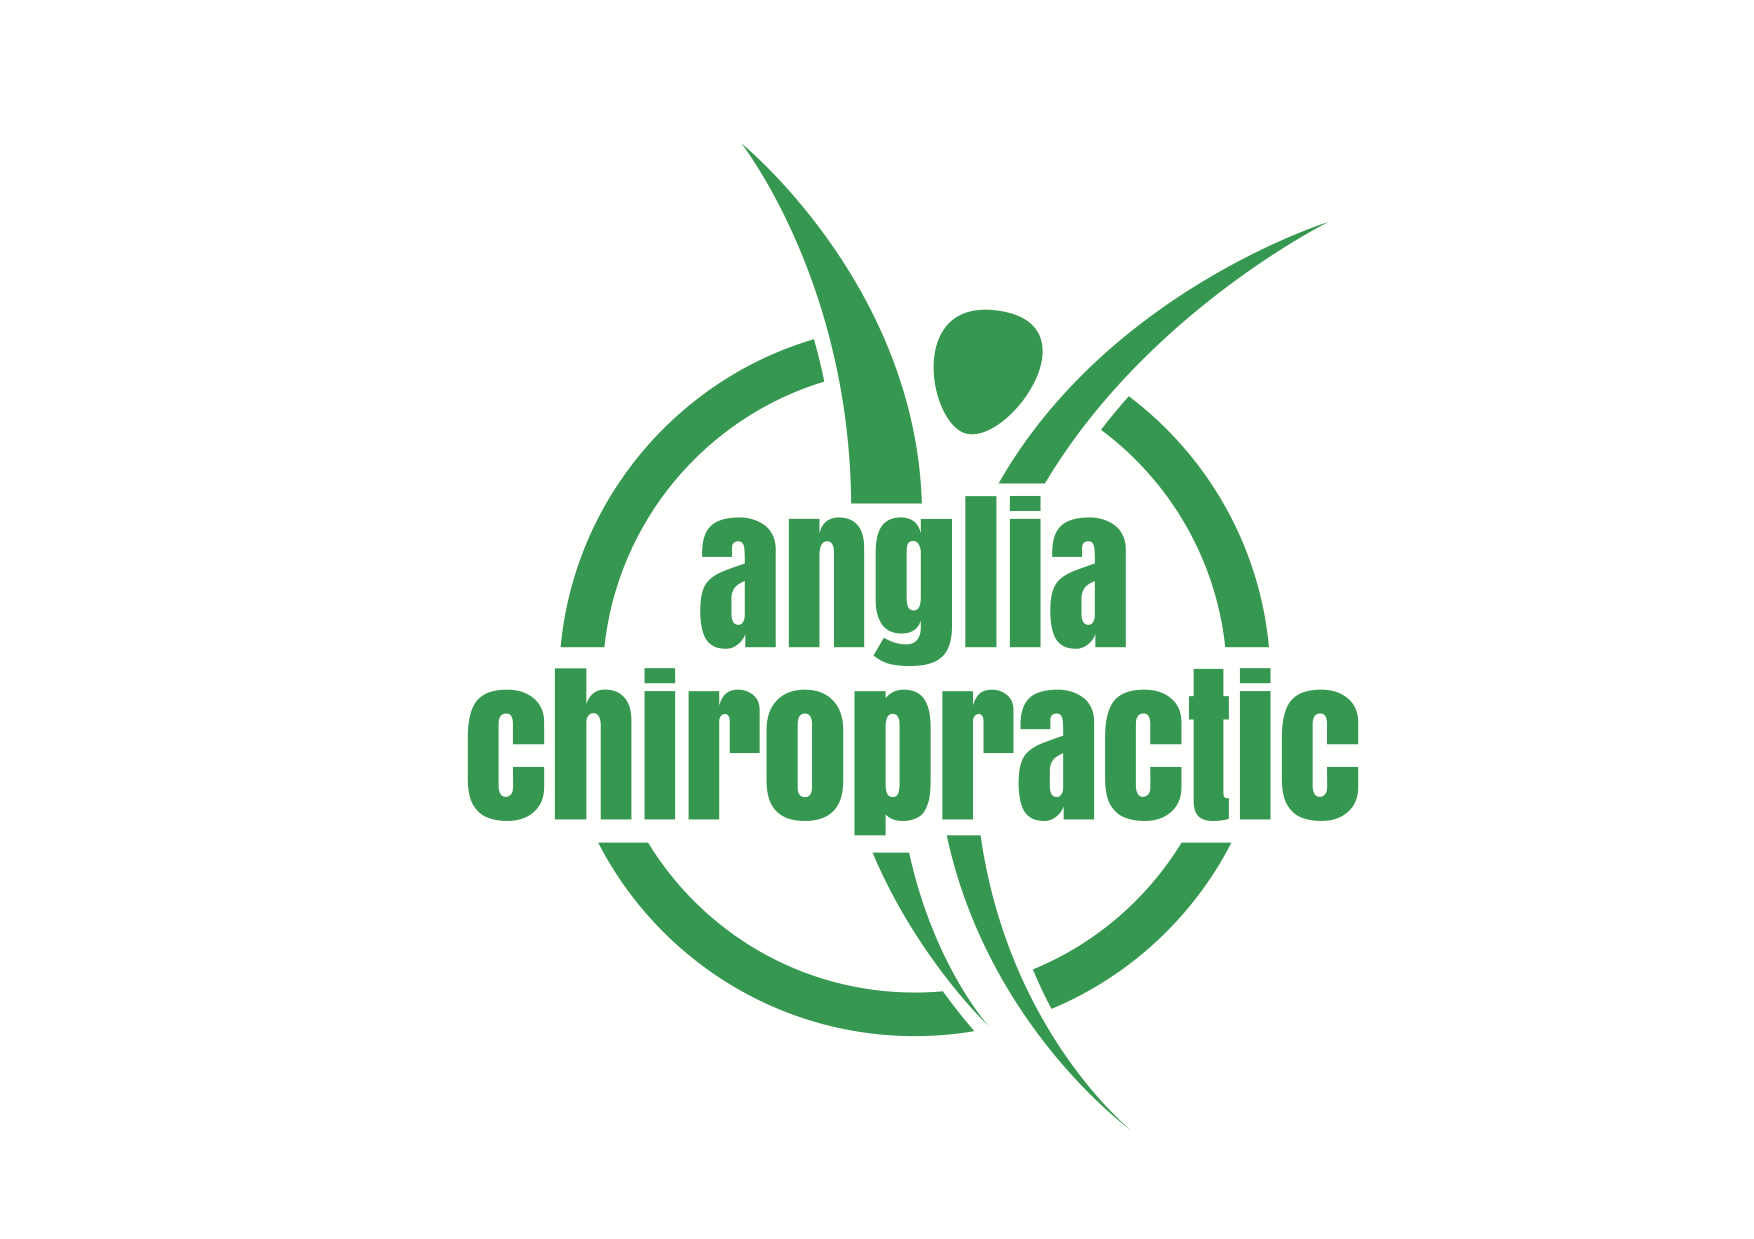 Link to https://www.angliachiropractic.co.uk/